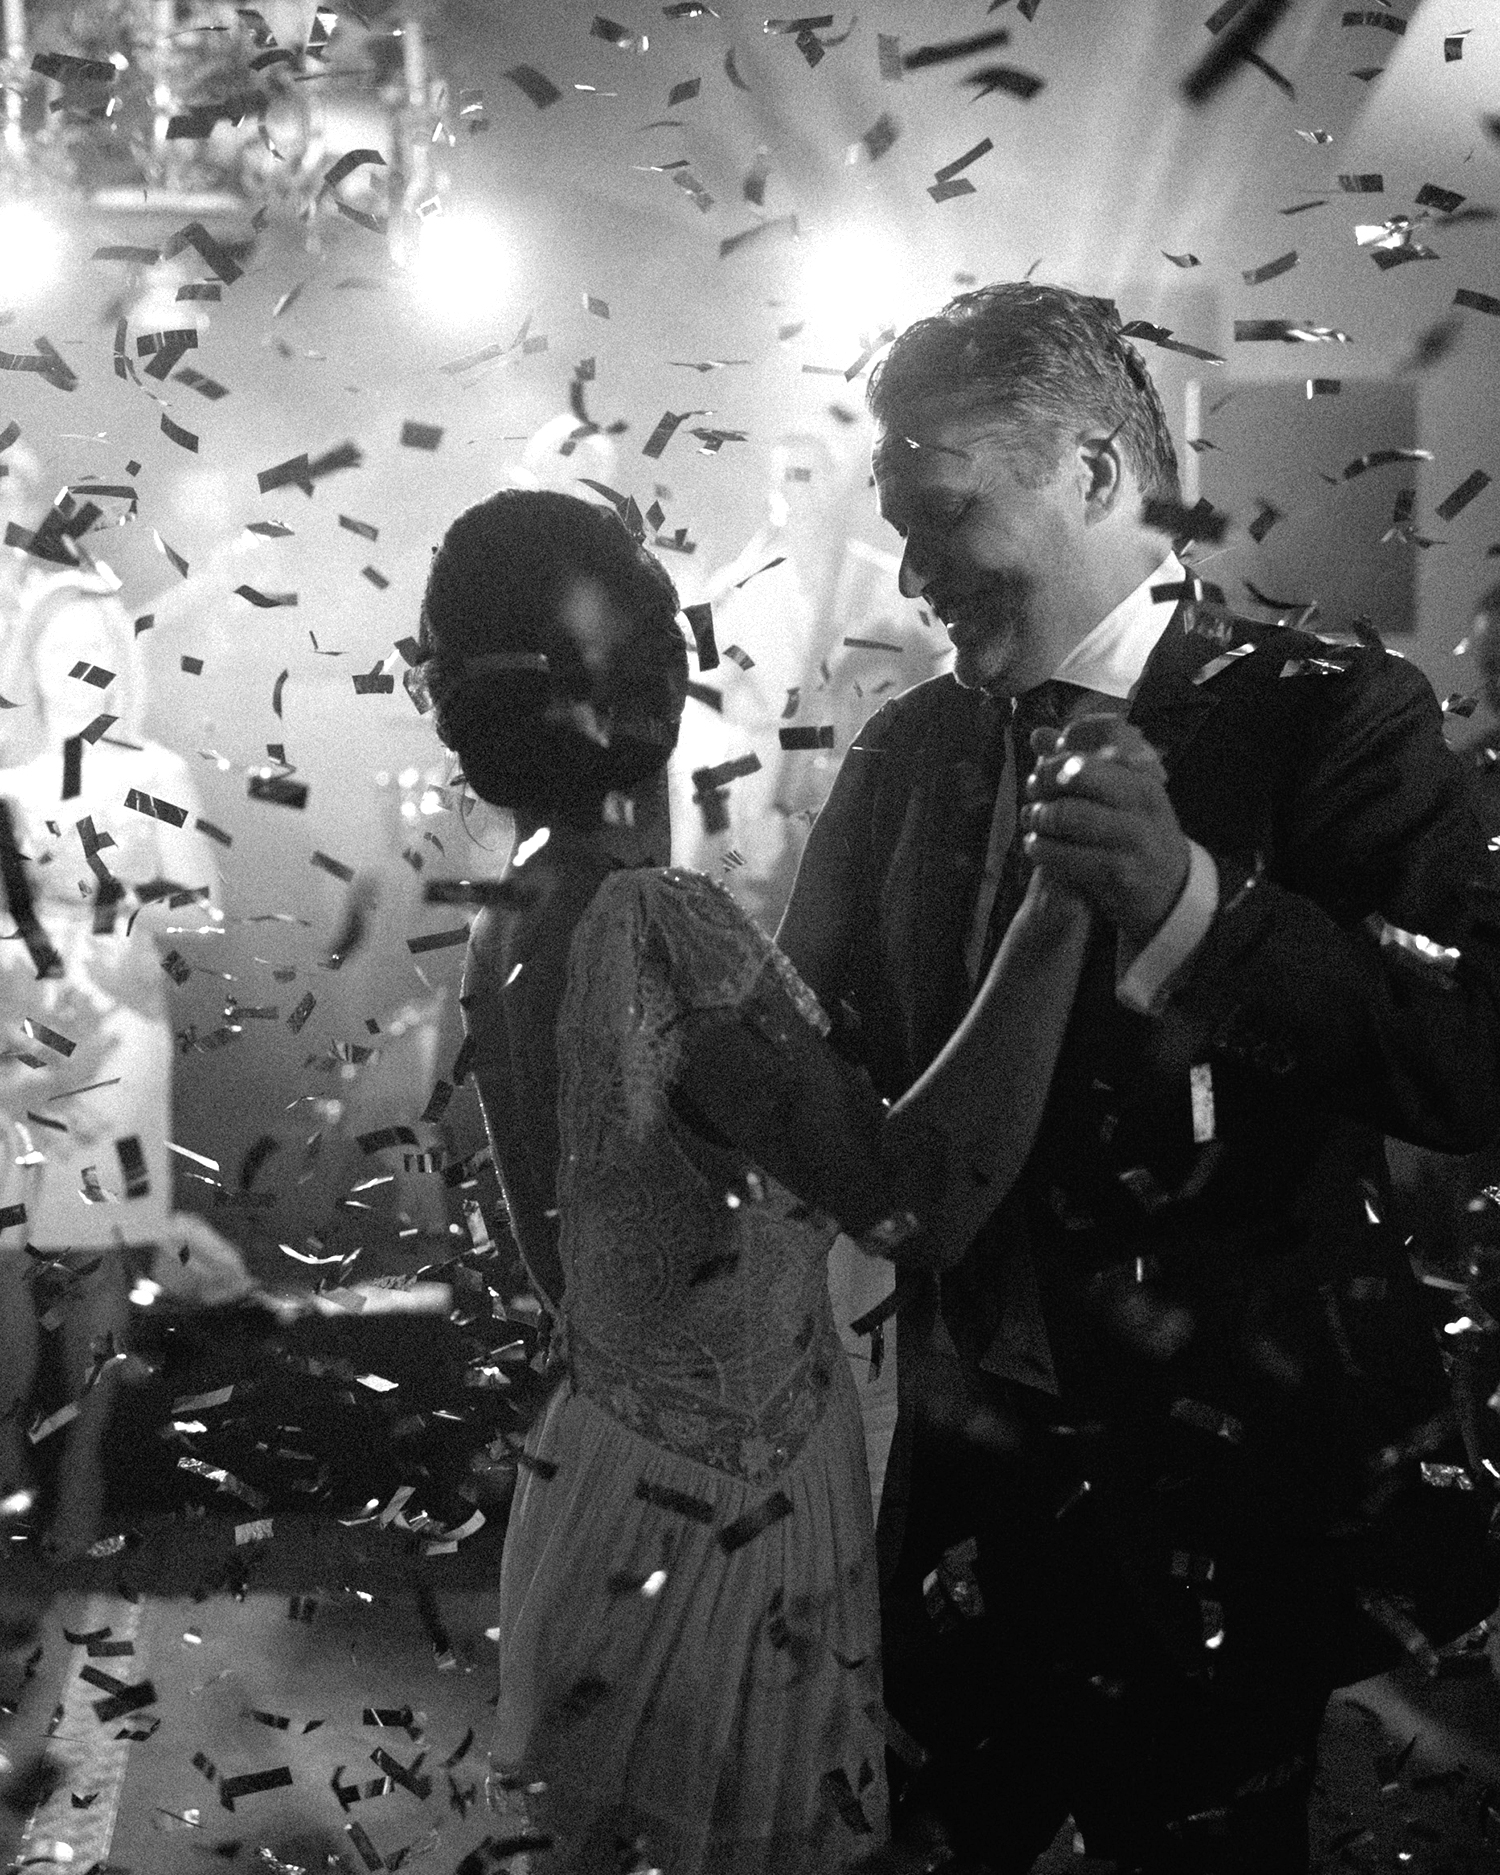 jannicke paal france wedding dance with confetti